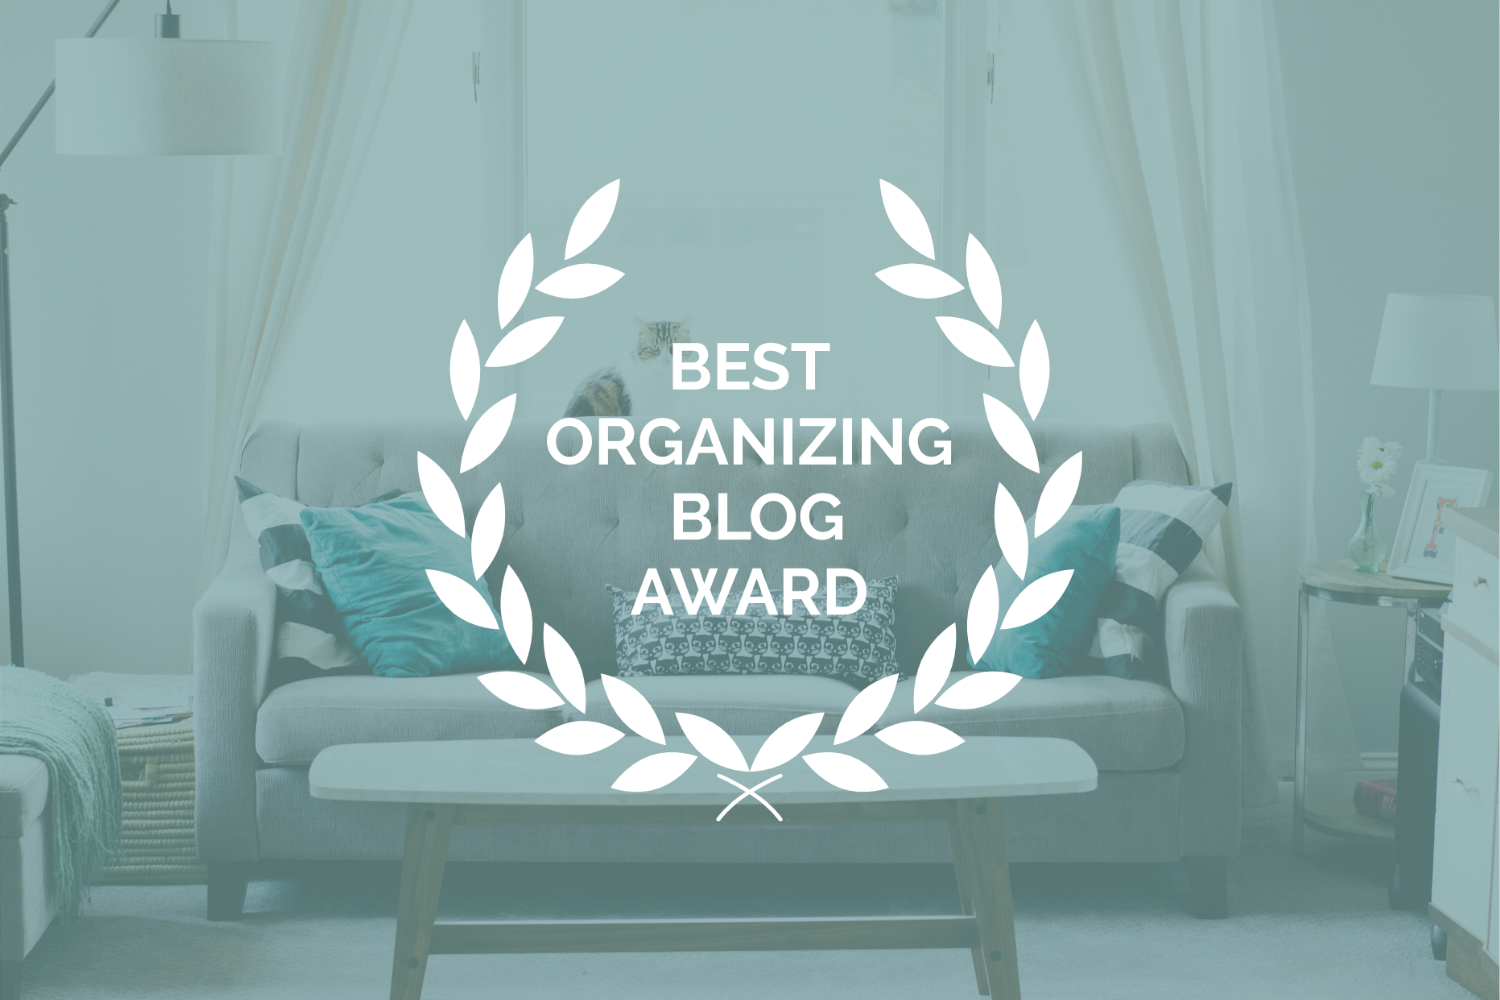 Best Organizing Blog Award for Simply Placed